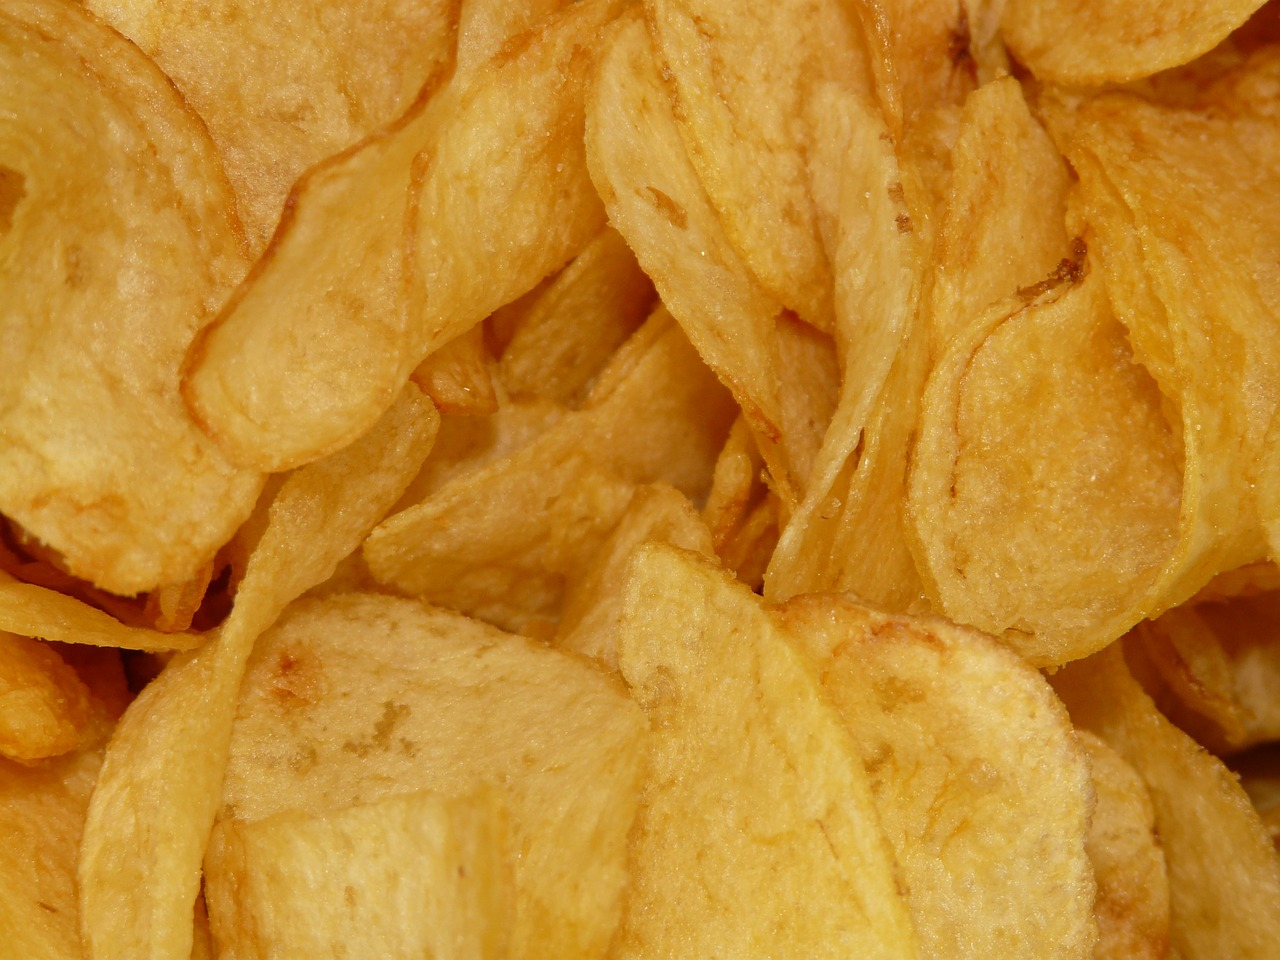 chips,potato chips,food,eat,fat,greasy,thick,unhealthy,free pictures, free photos, free images, royalty free, free illustrations, public domain